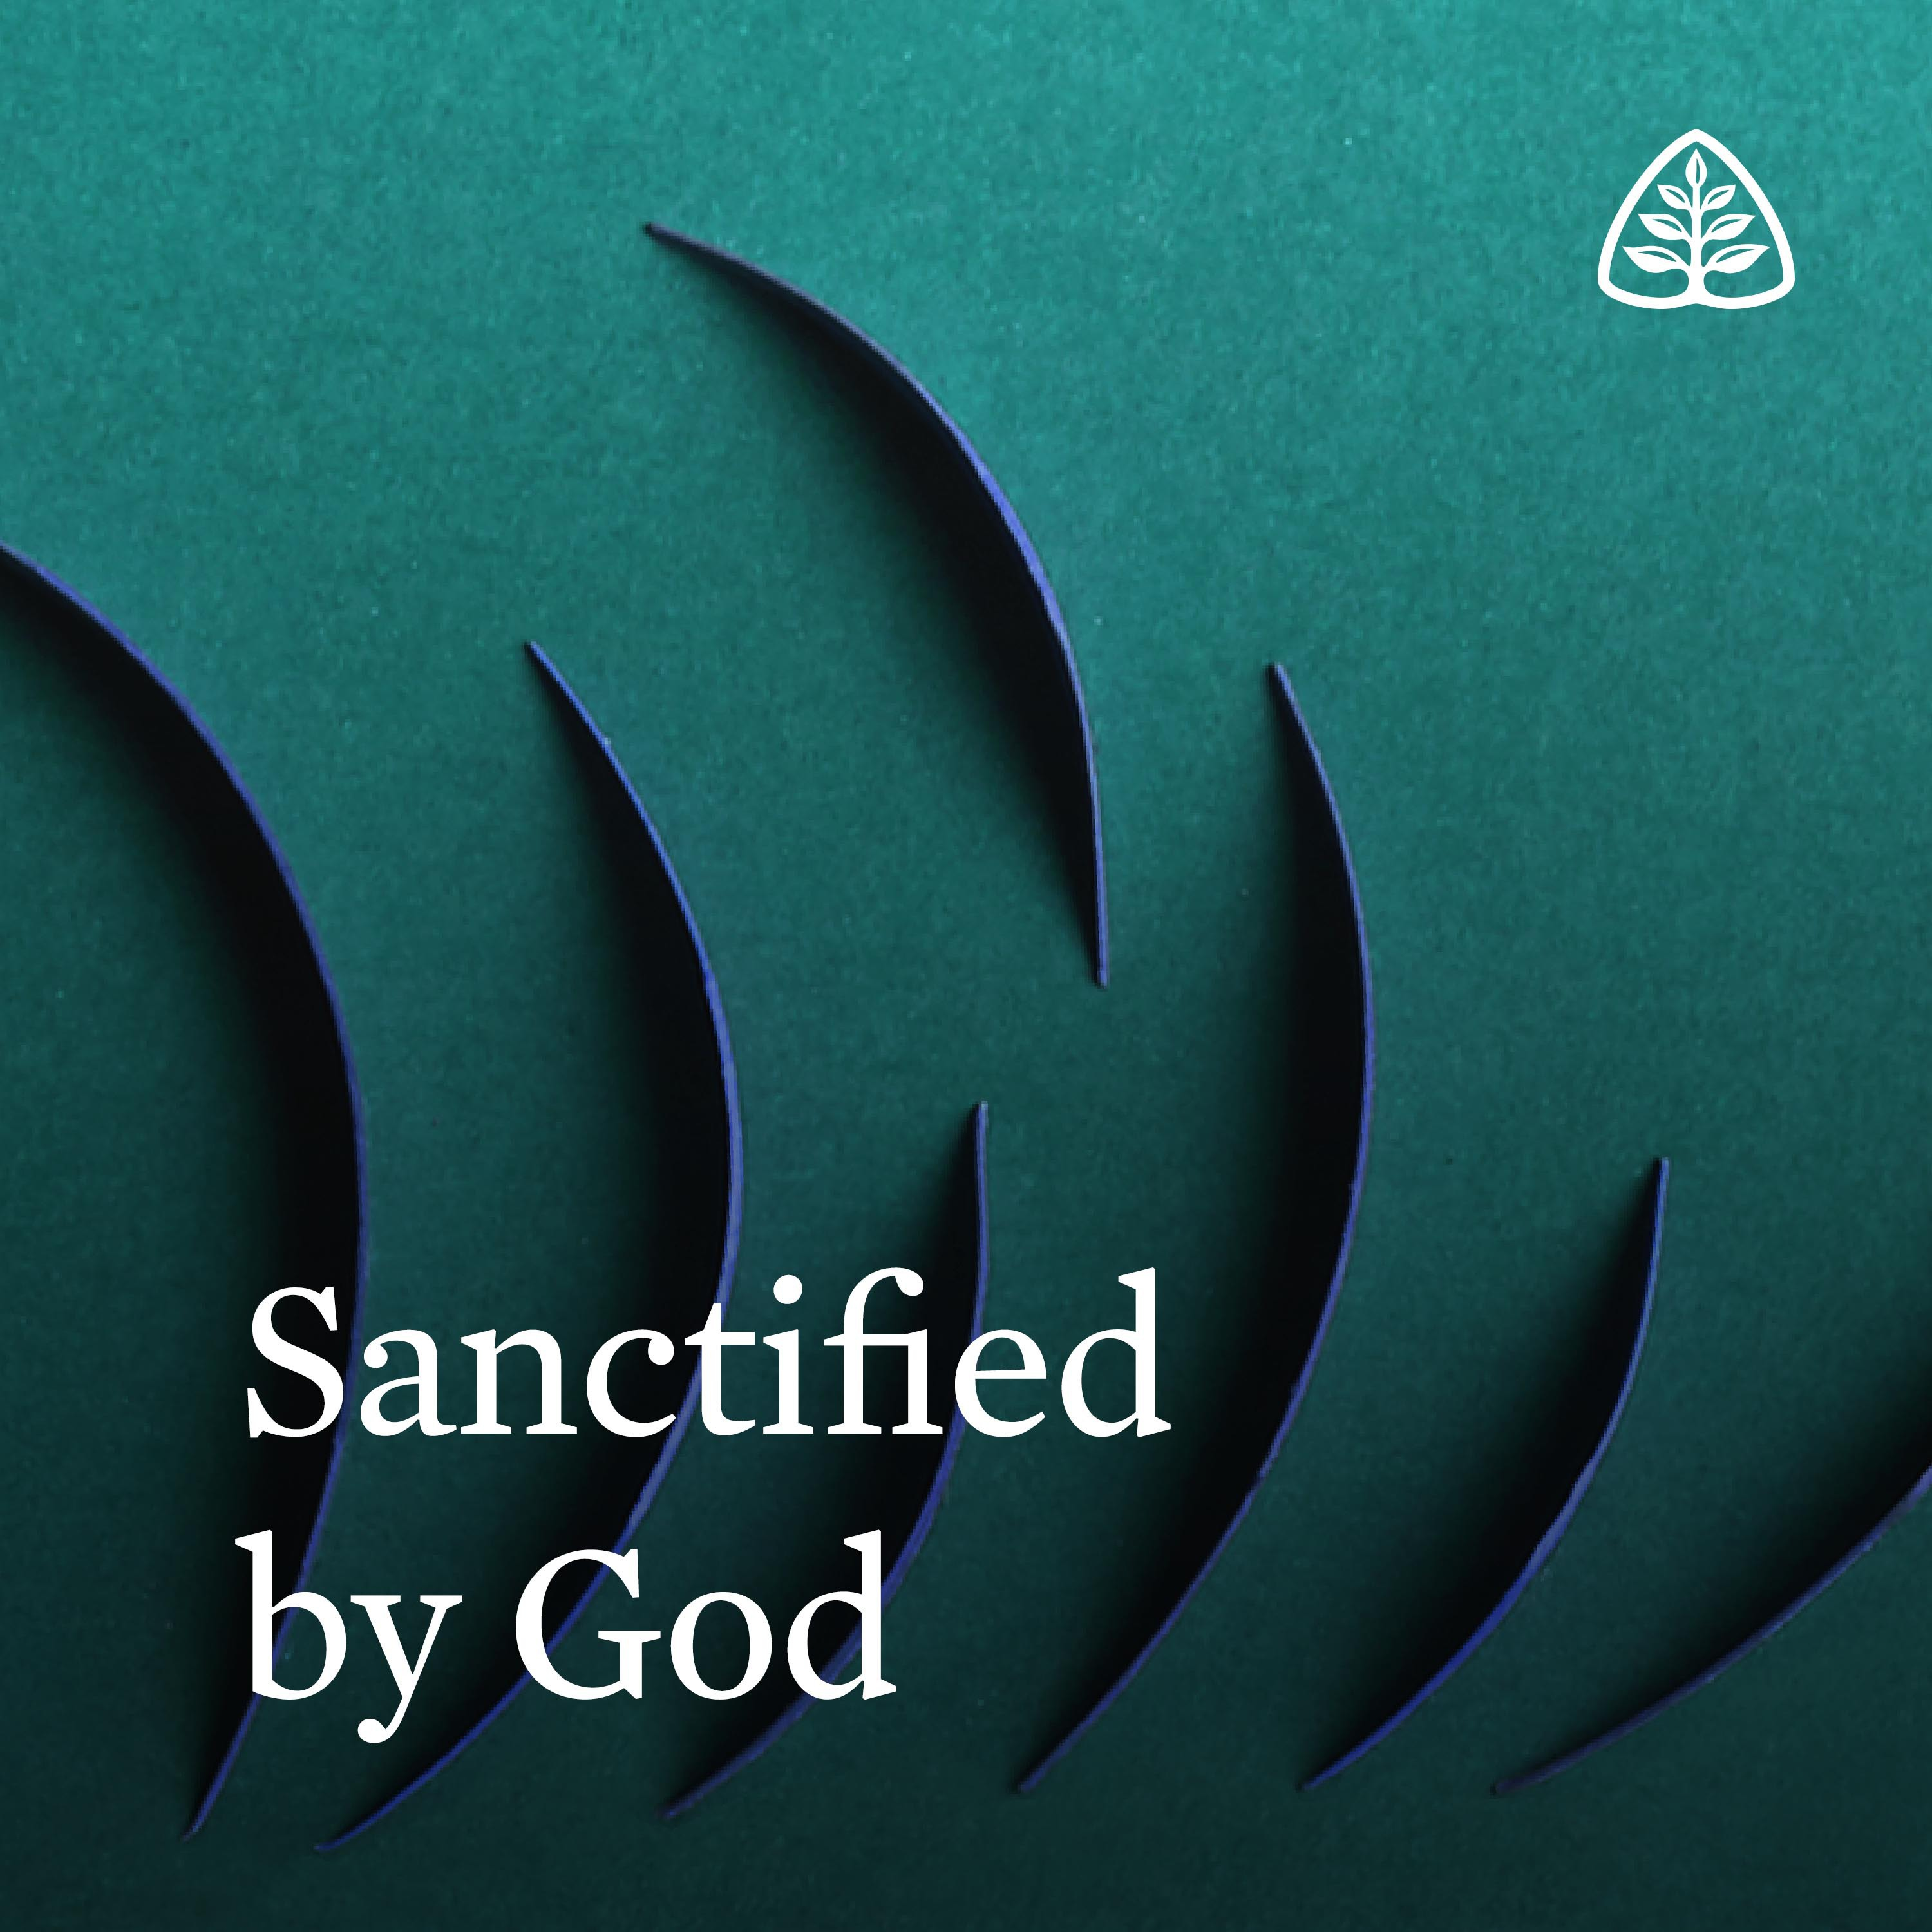 Sanctified by God